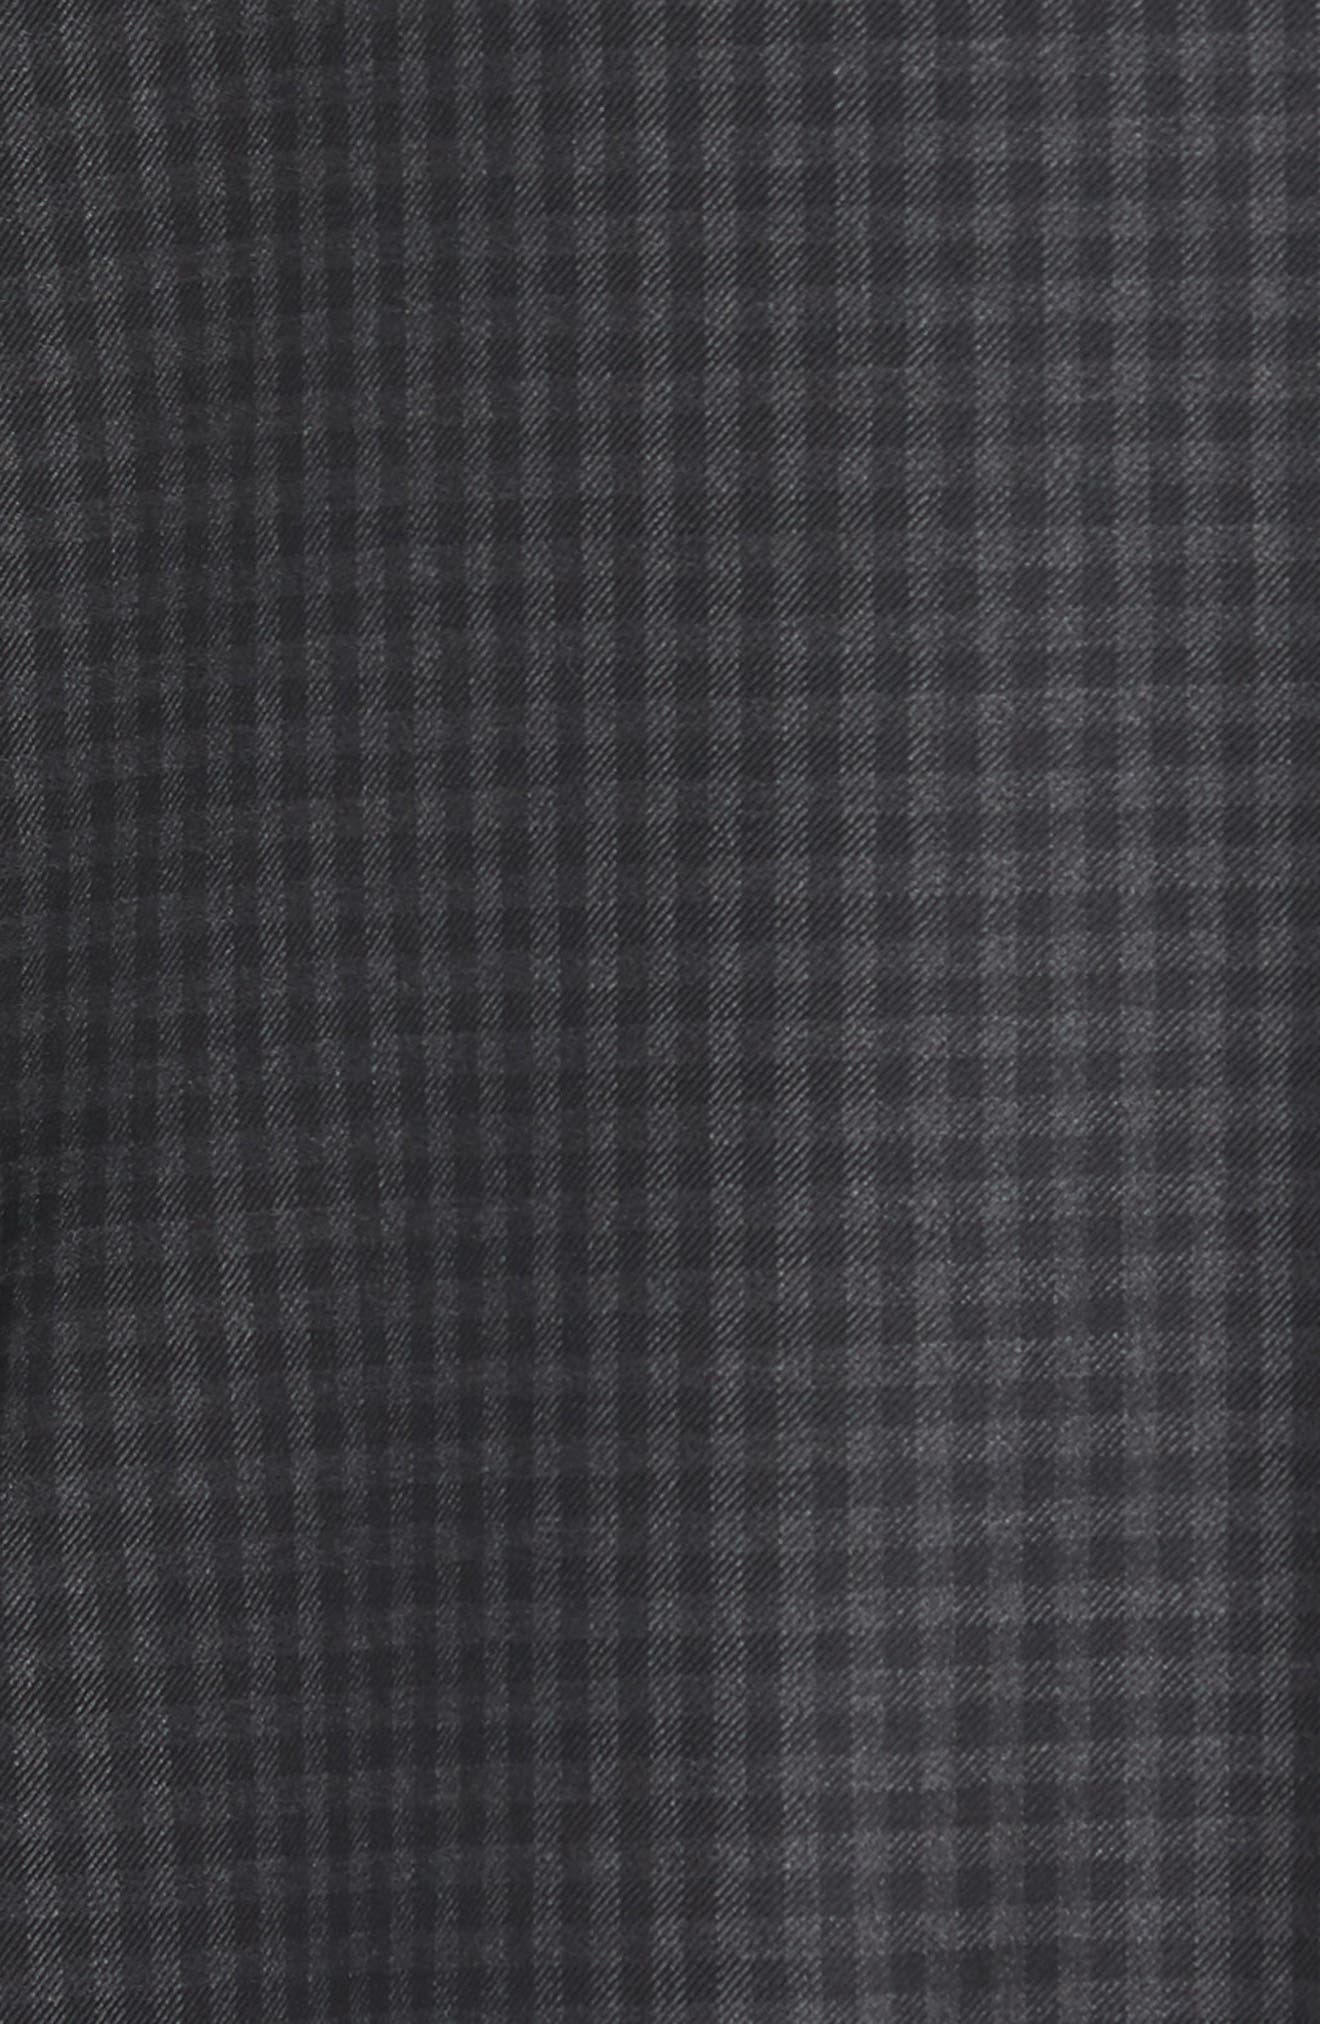 Classic Fit Check Wool Sport Coat,                             Alternate thumbnail 5, color,                             Charcoal